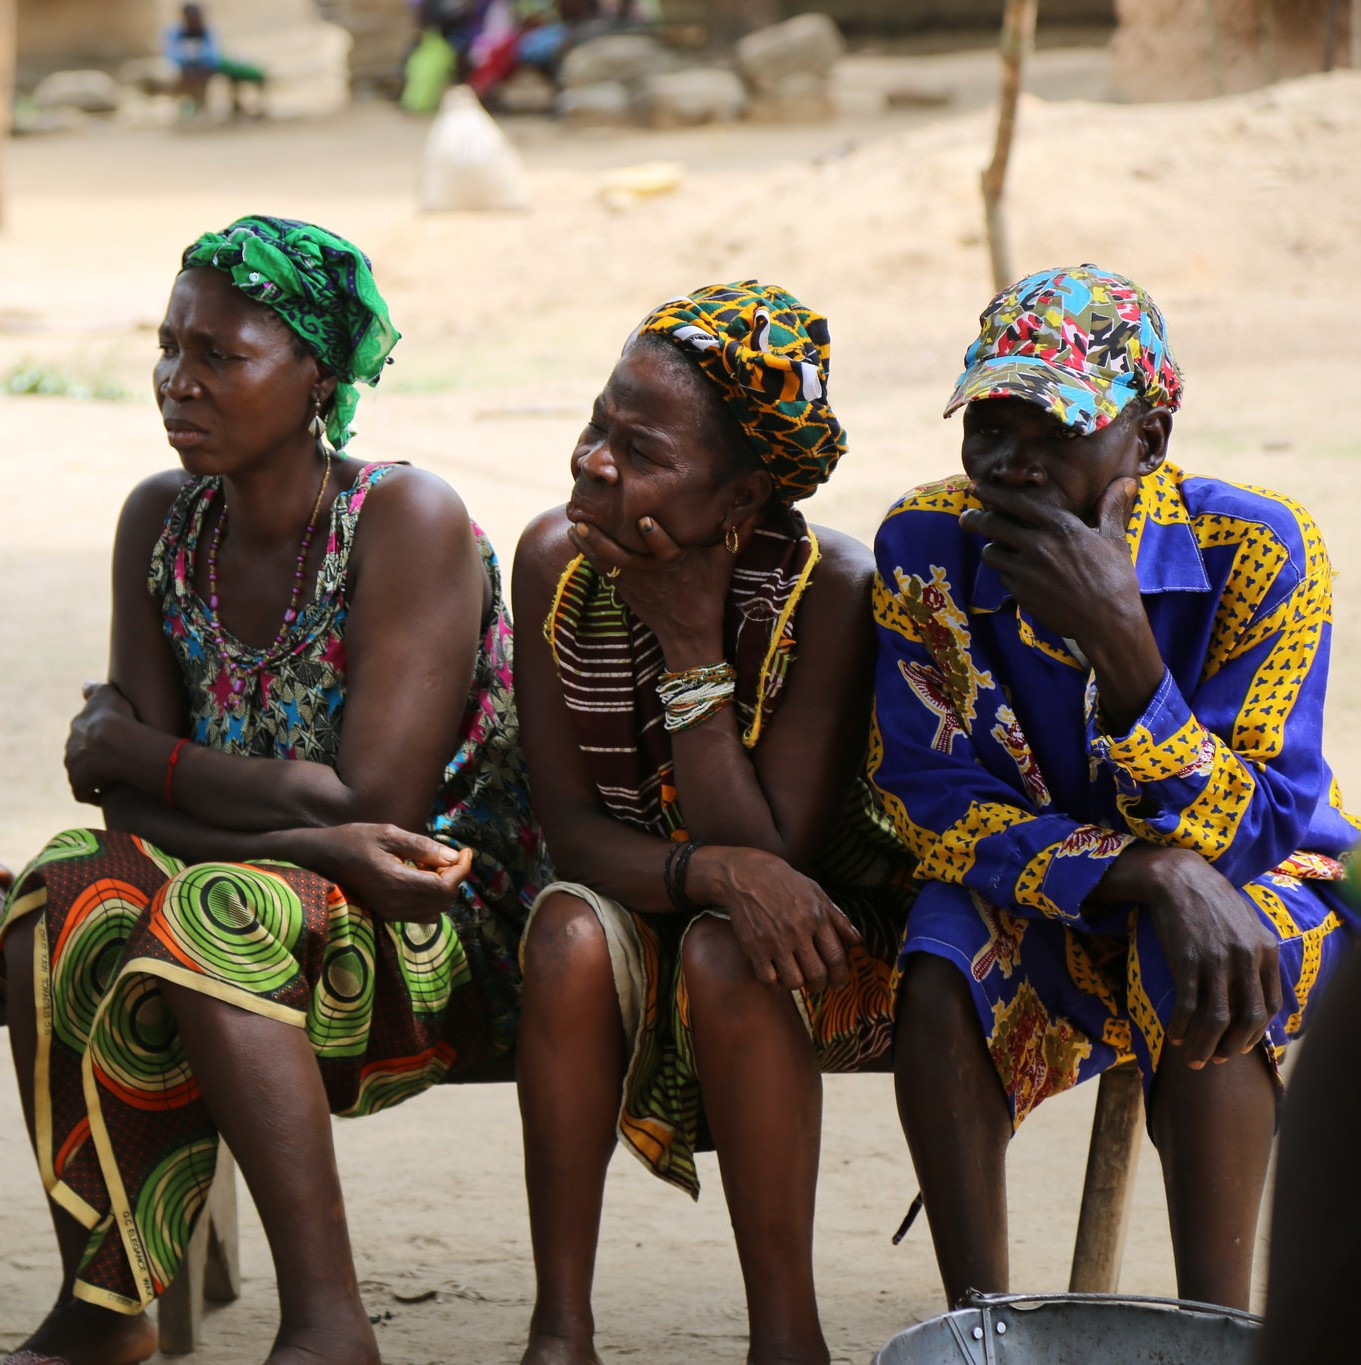 Climate Change and Infected Bushmeat Threaten Women on Frontlines of the Ebola Crisis   VICE News